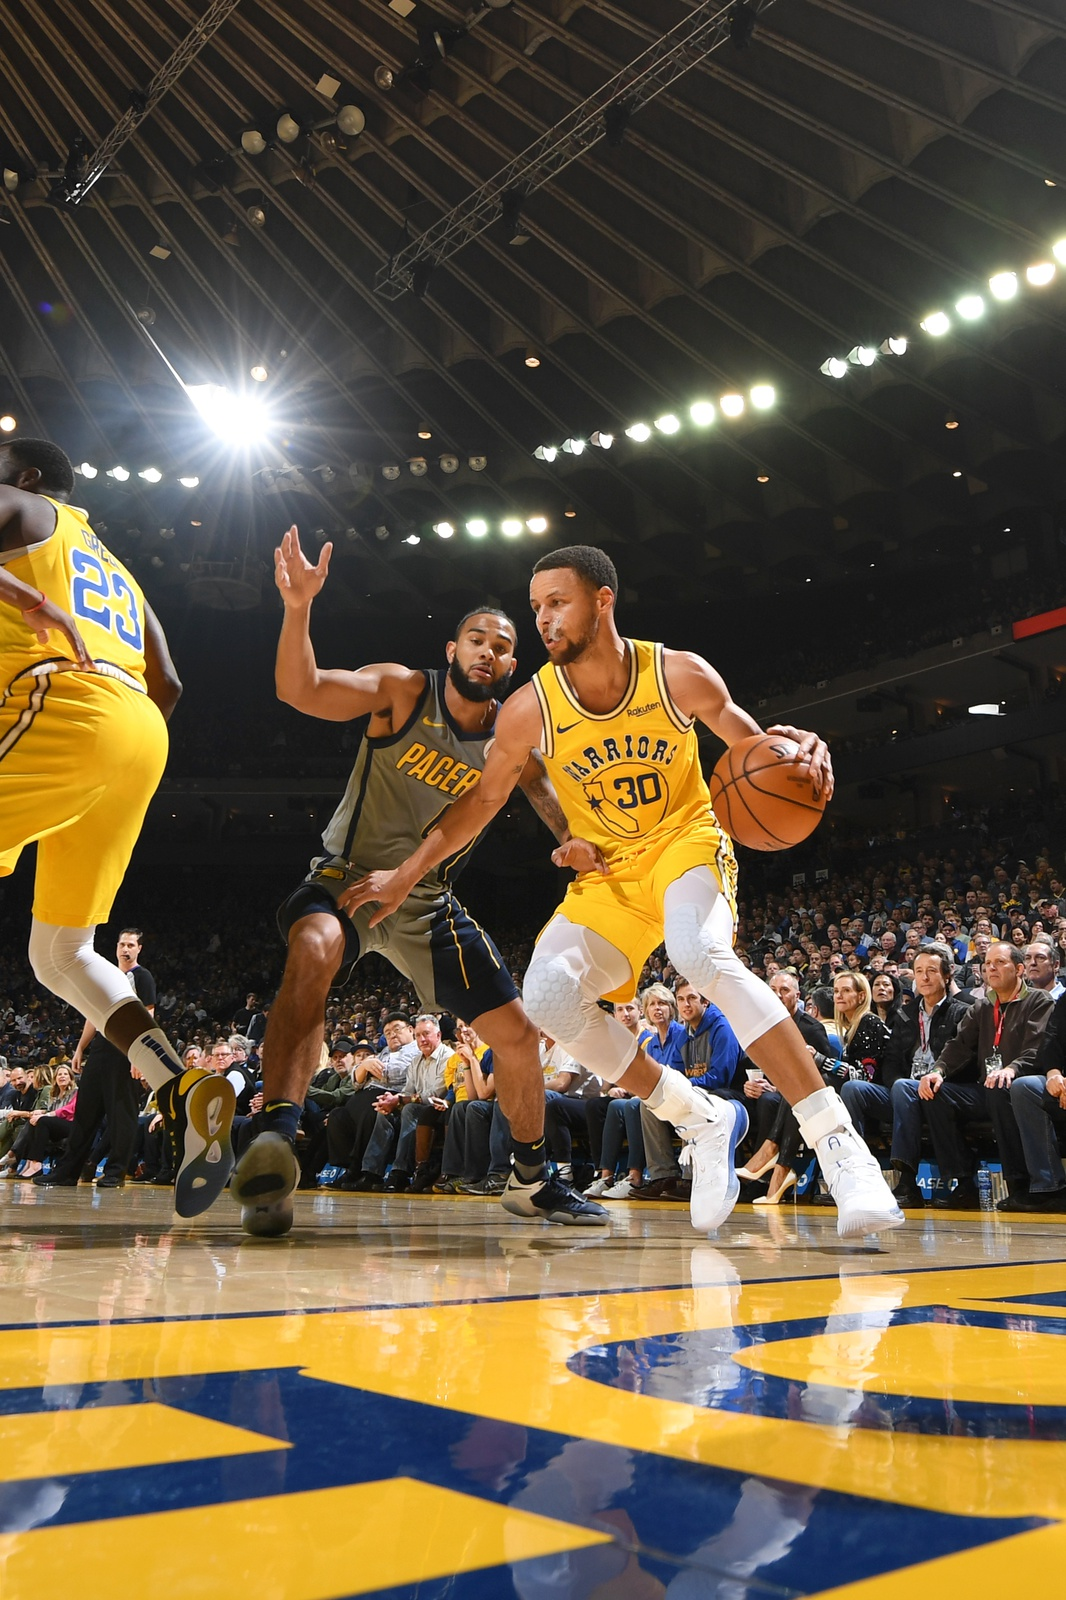 Stephen Curry #30 of the Golden State Warriors handles the ball against the Indiana Pacers on March 21, 2019 at ORACLE Arena in Oakland, California.